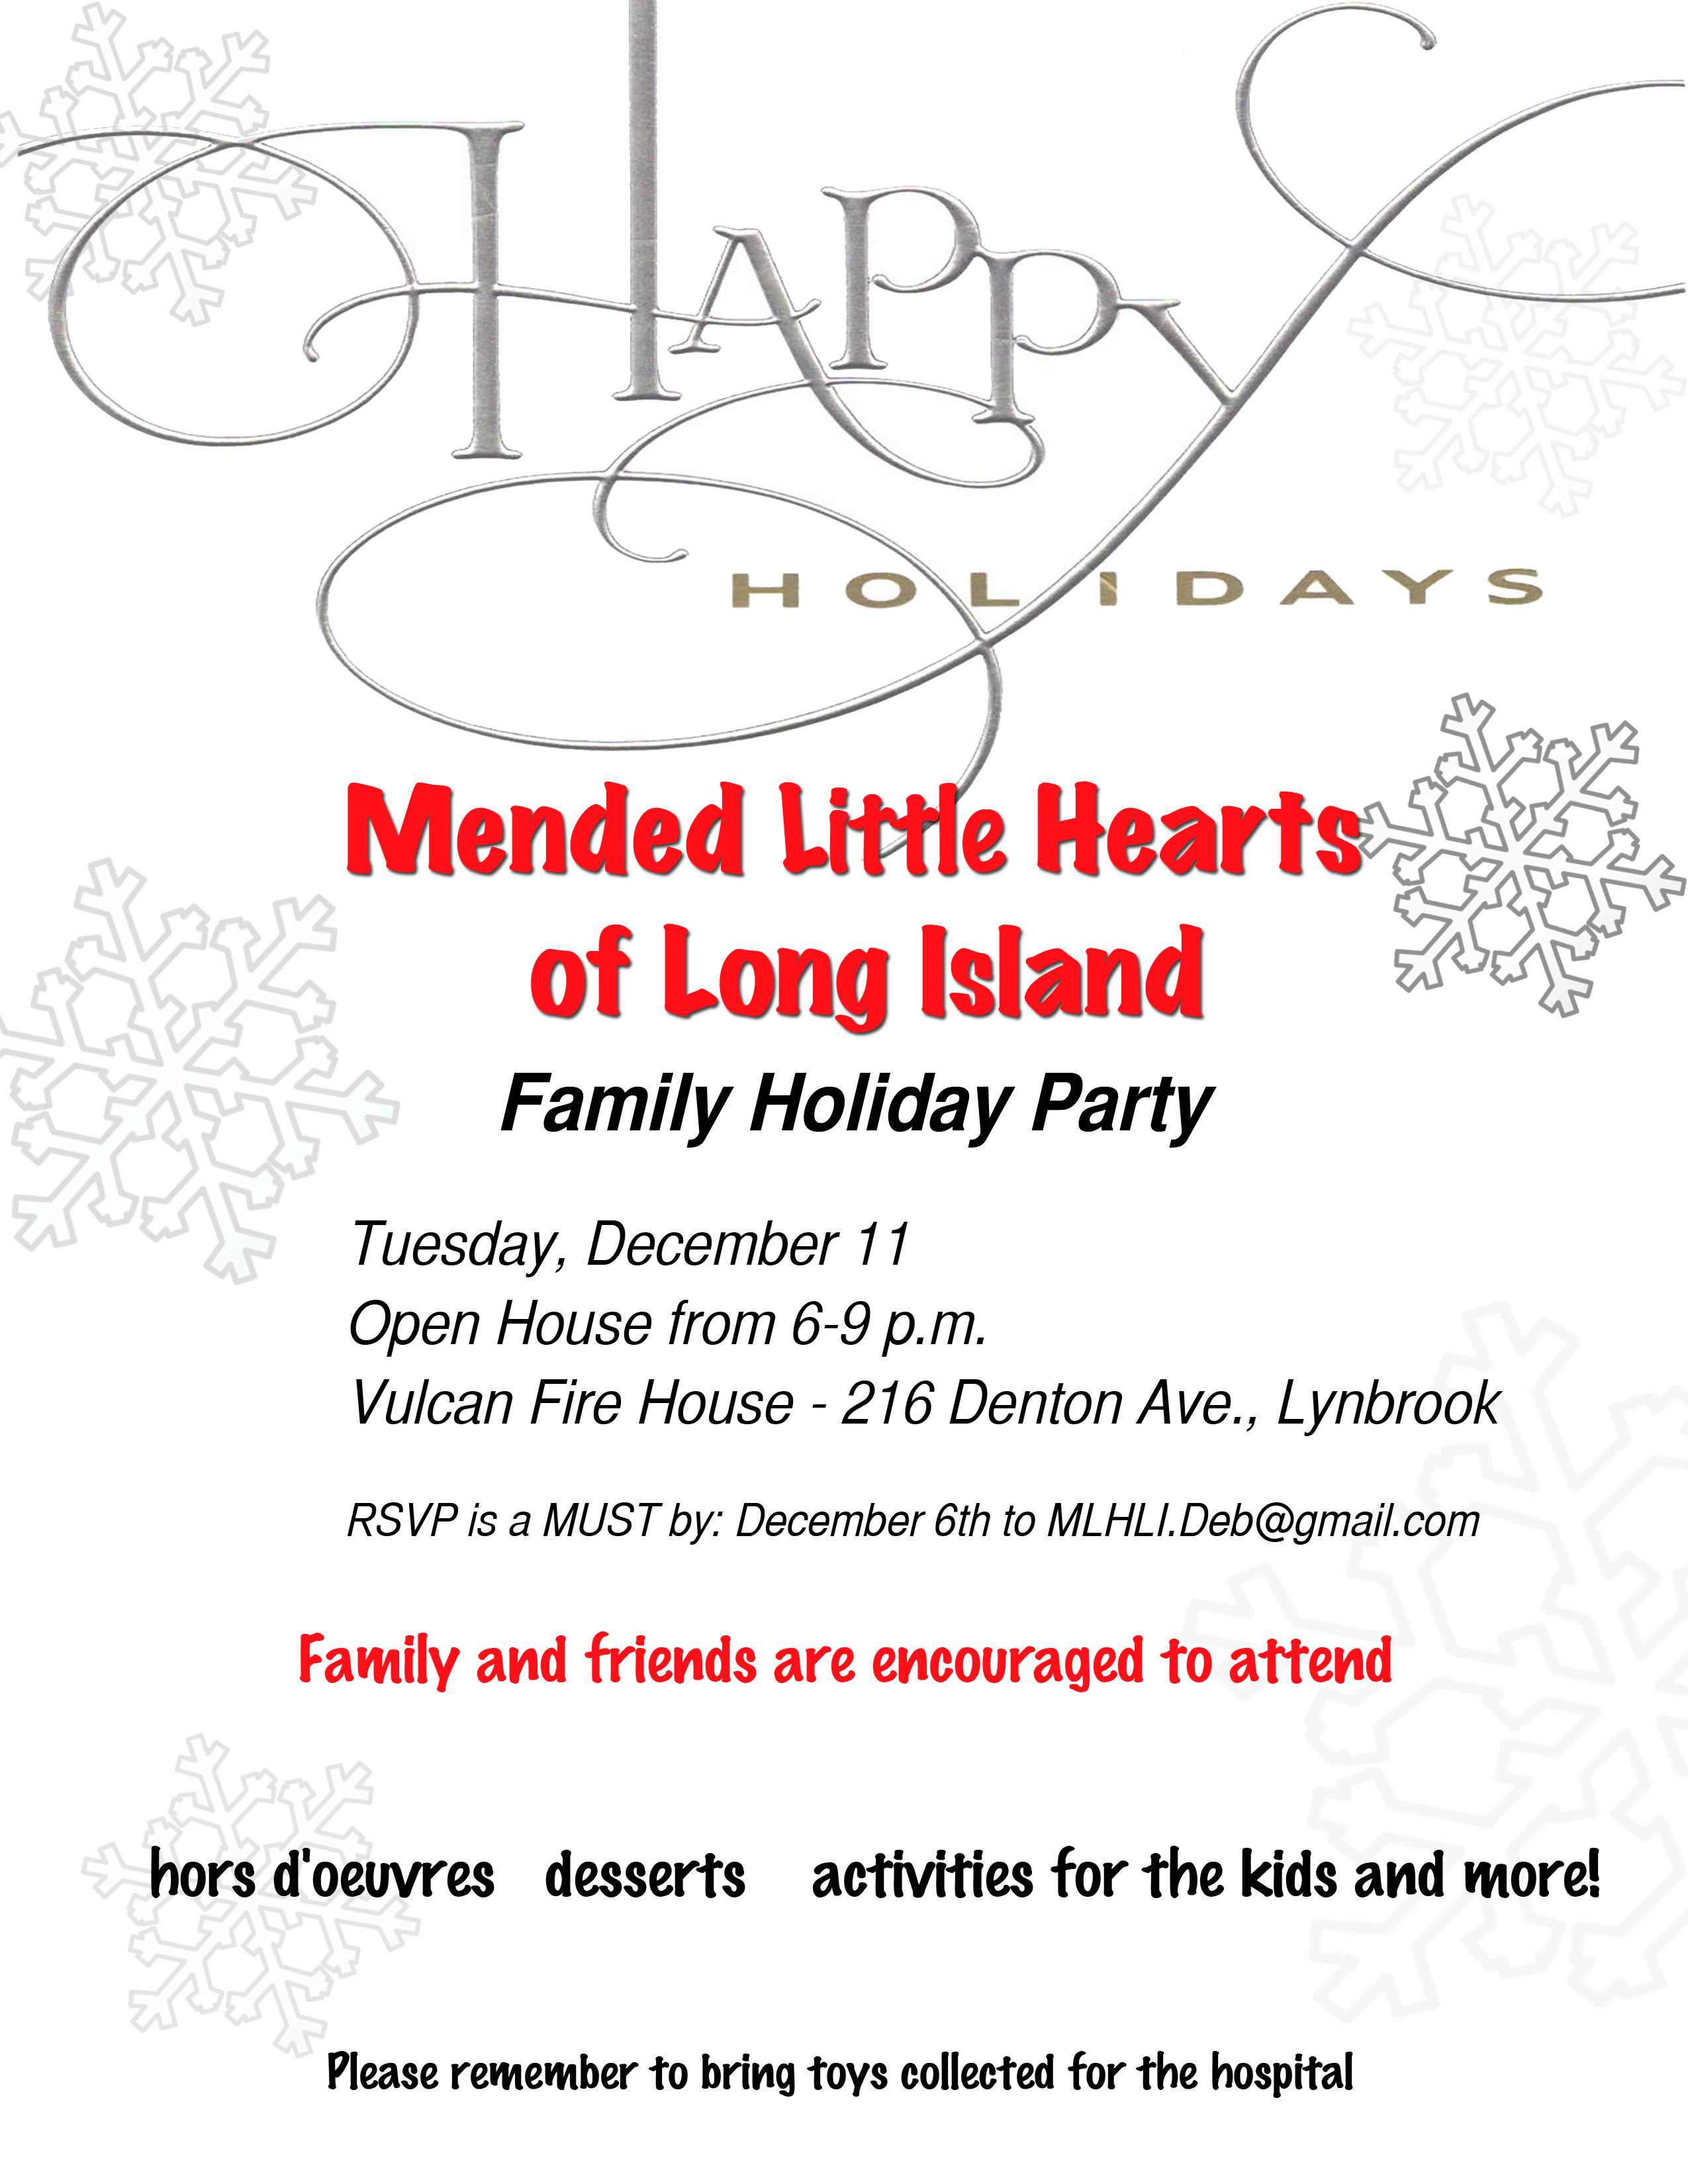 holiday-party-flyer-1